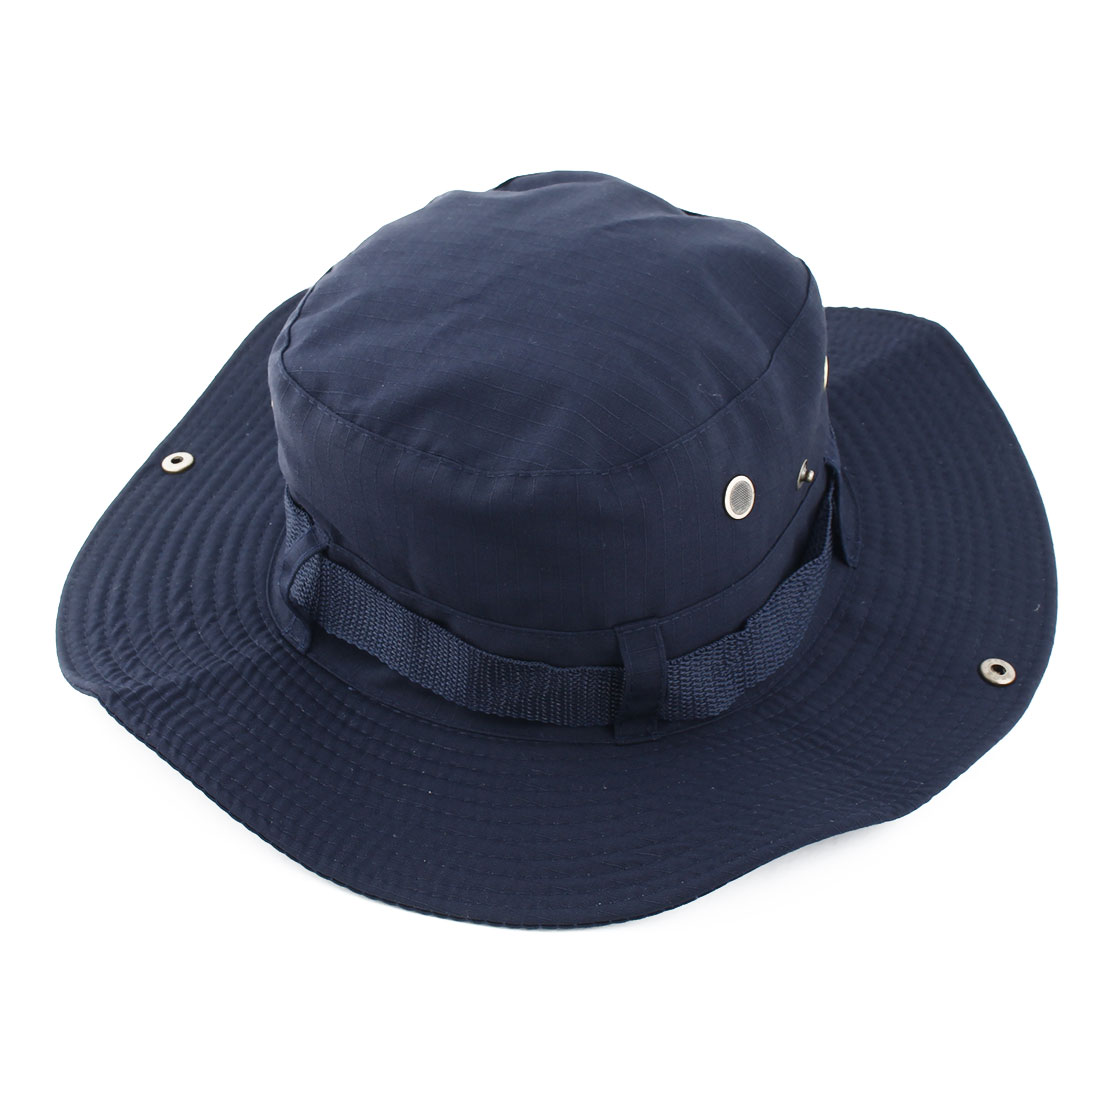 Fisherman Outdoor Sports Hiking Hunting Adjustable Strap Wide Brim Sun Protector Bucket Summer Cap Fishing Hat Navy Blue